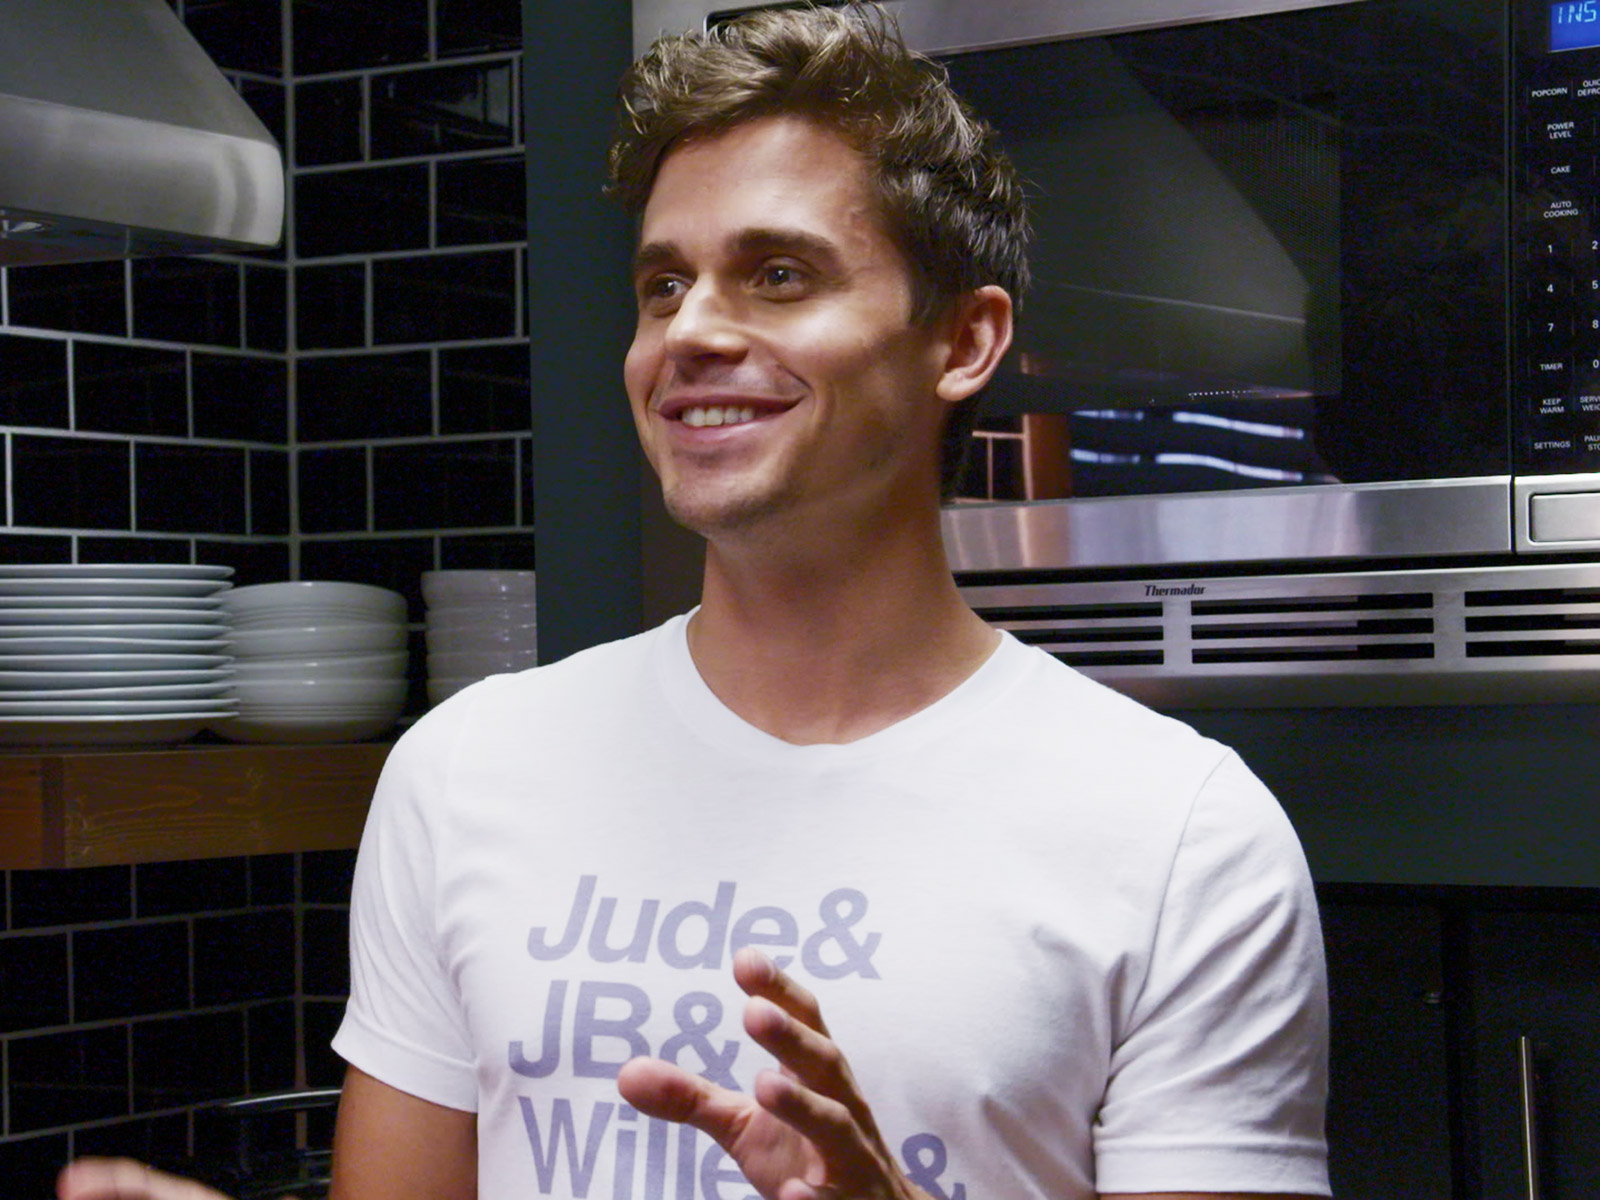 Antoni Porowski Says His Debut Cookbook Will Be 'Very Personal'—Get a First Look at the Cover!